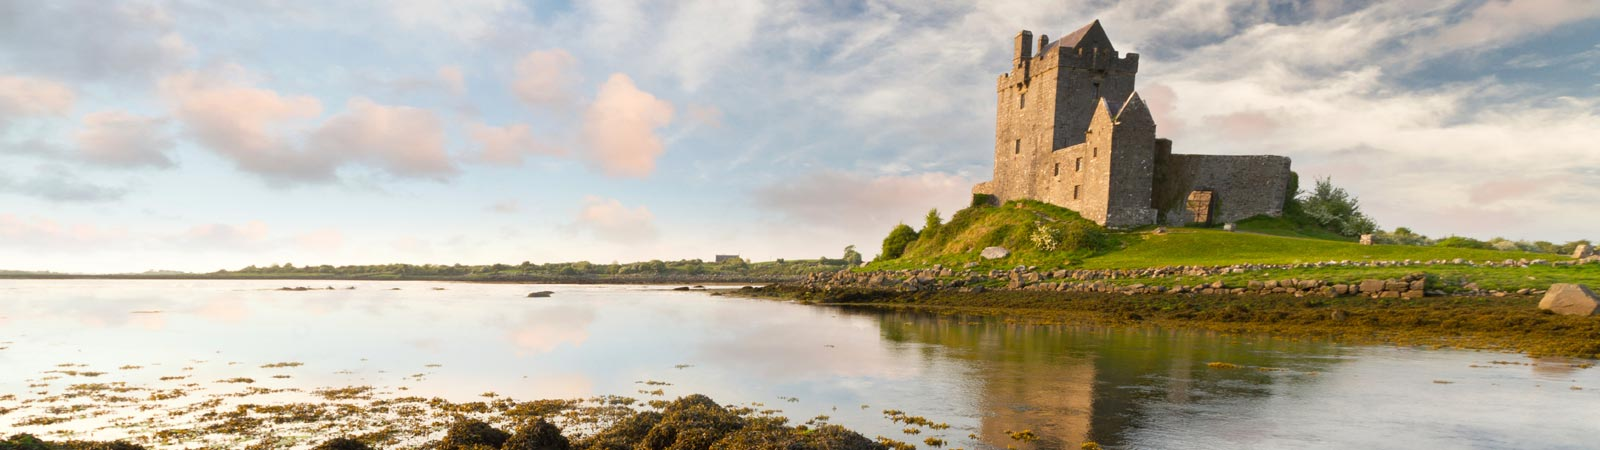 Our team of experts are ready to assist in making sure your Private Tour of Ireland is a memorable one.